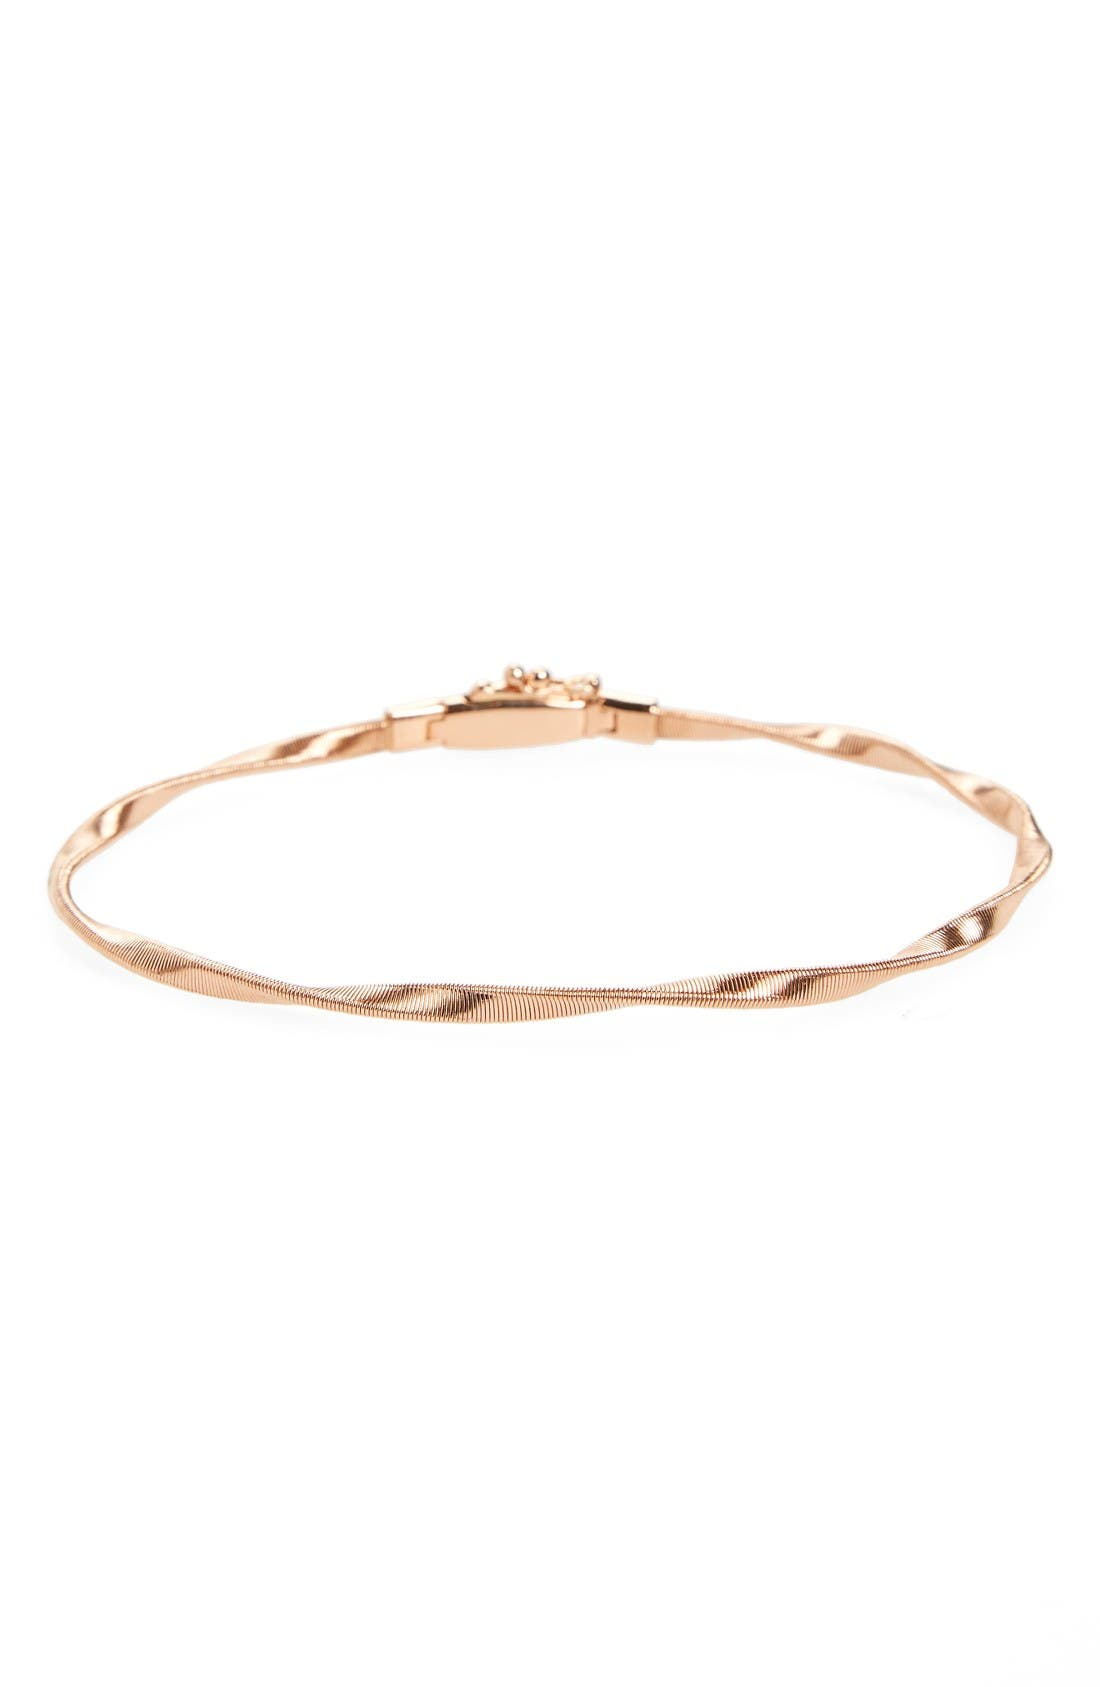 'Marrakech' Single Strand Bracelet,                         Main,                         color, Rose Gold